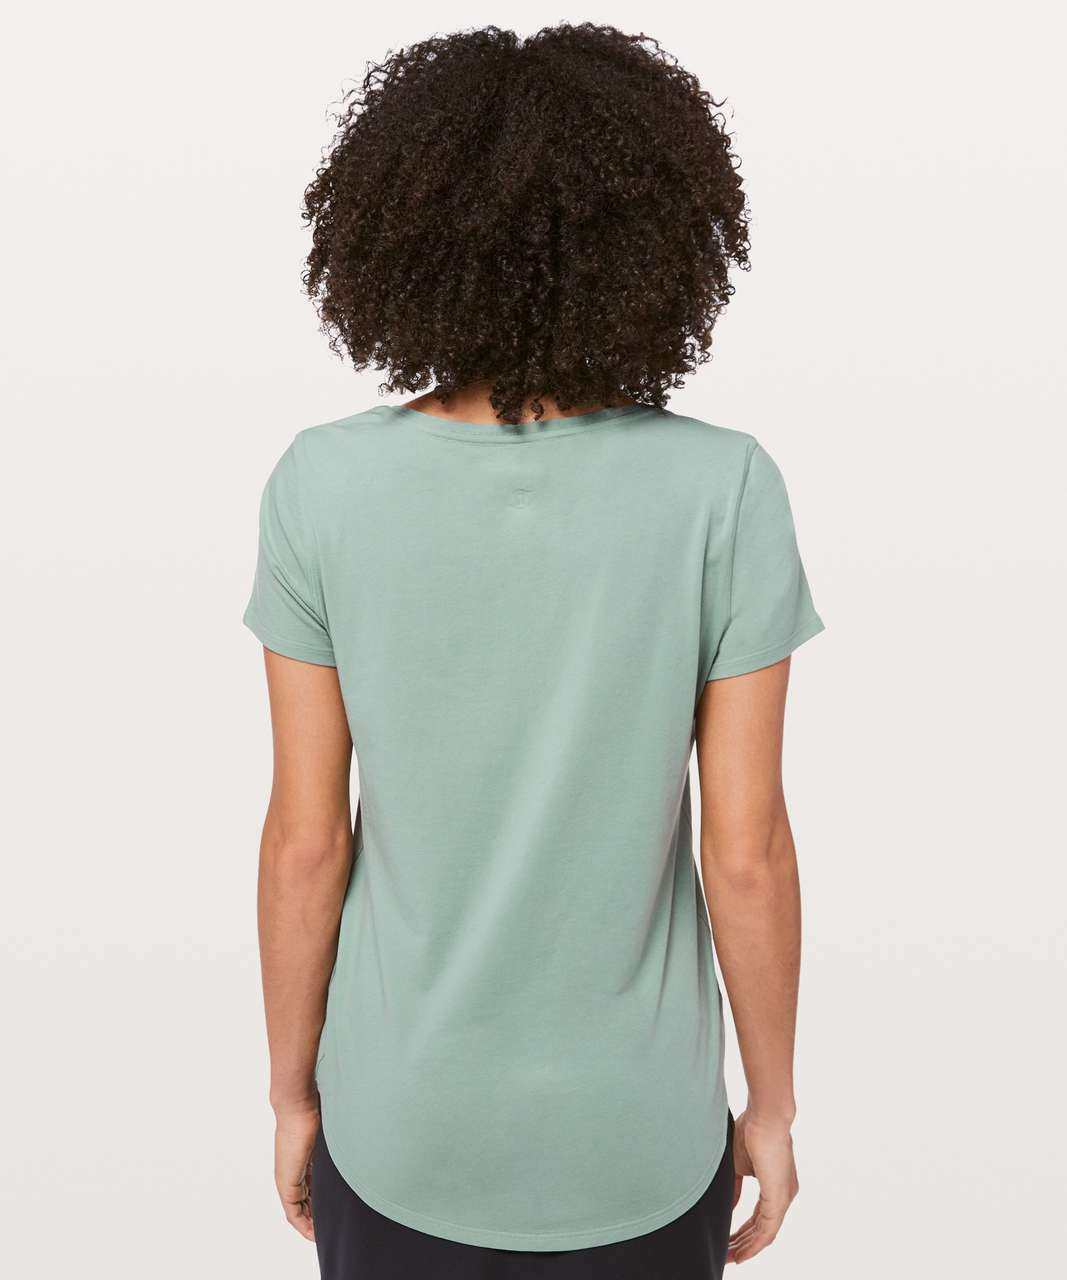 Lululemon Love Tee V - Palm Court